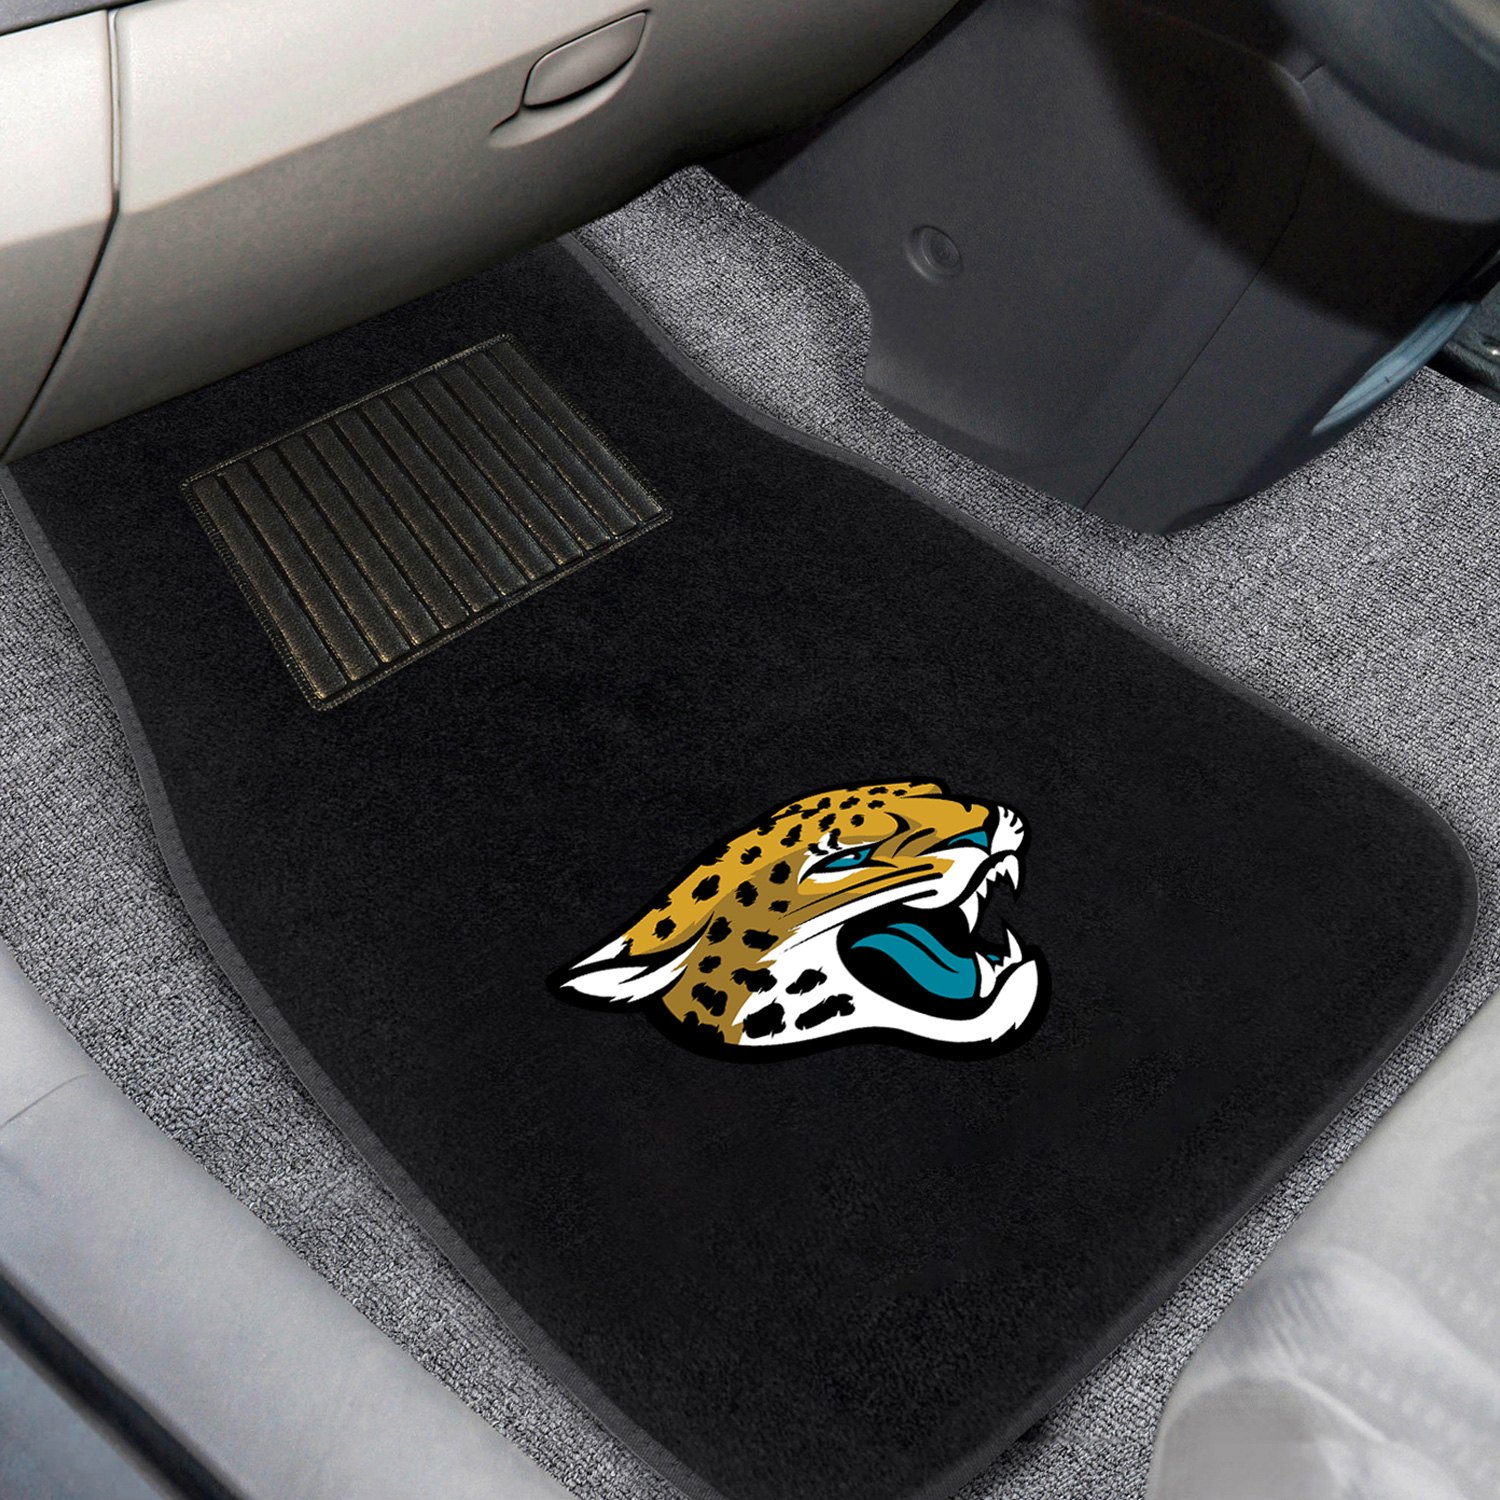 buy cheap FanMats® 21540 - Jacksonville Jaguars Logo on Embroidered Floor Mats for 2015 RAM 1500 TRUCK Ebay & Amazon